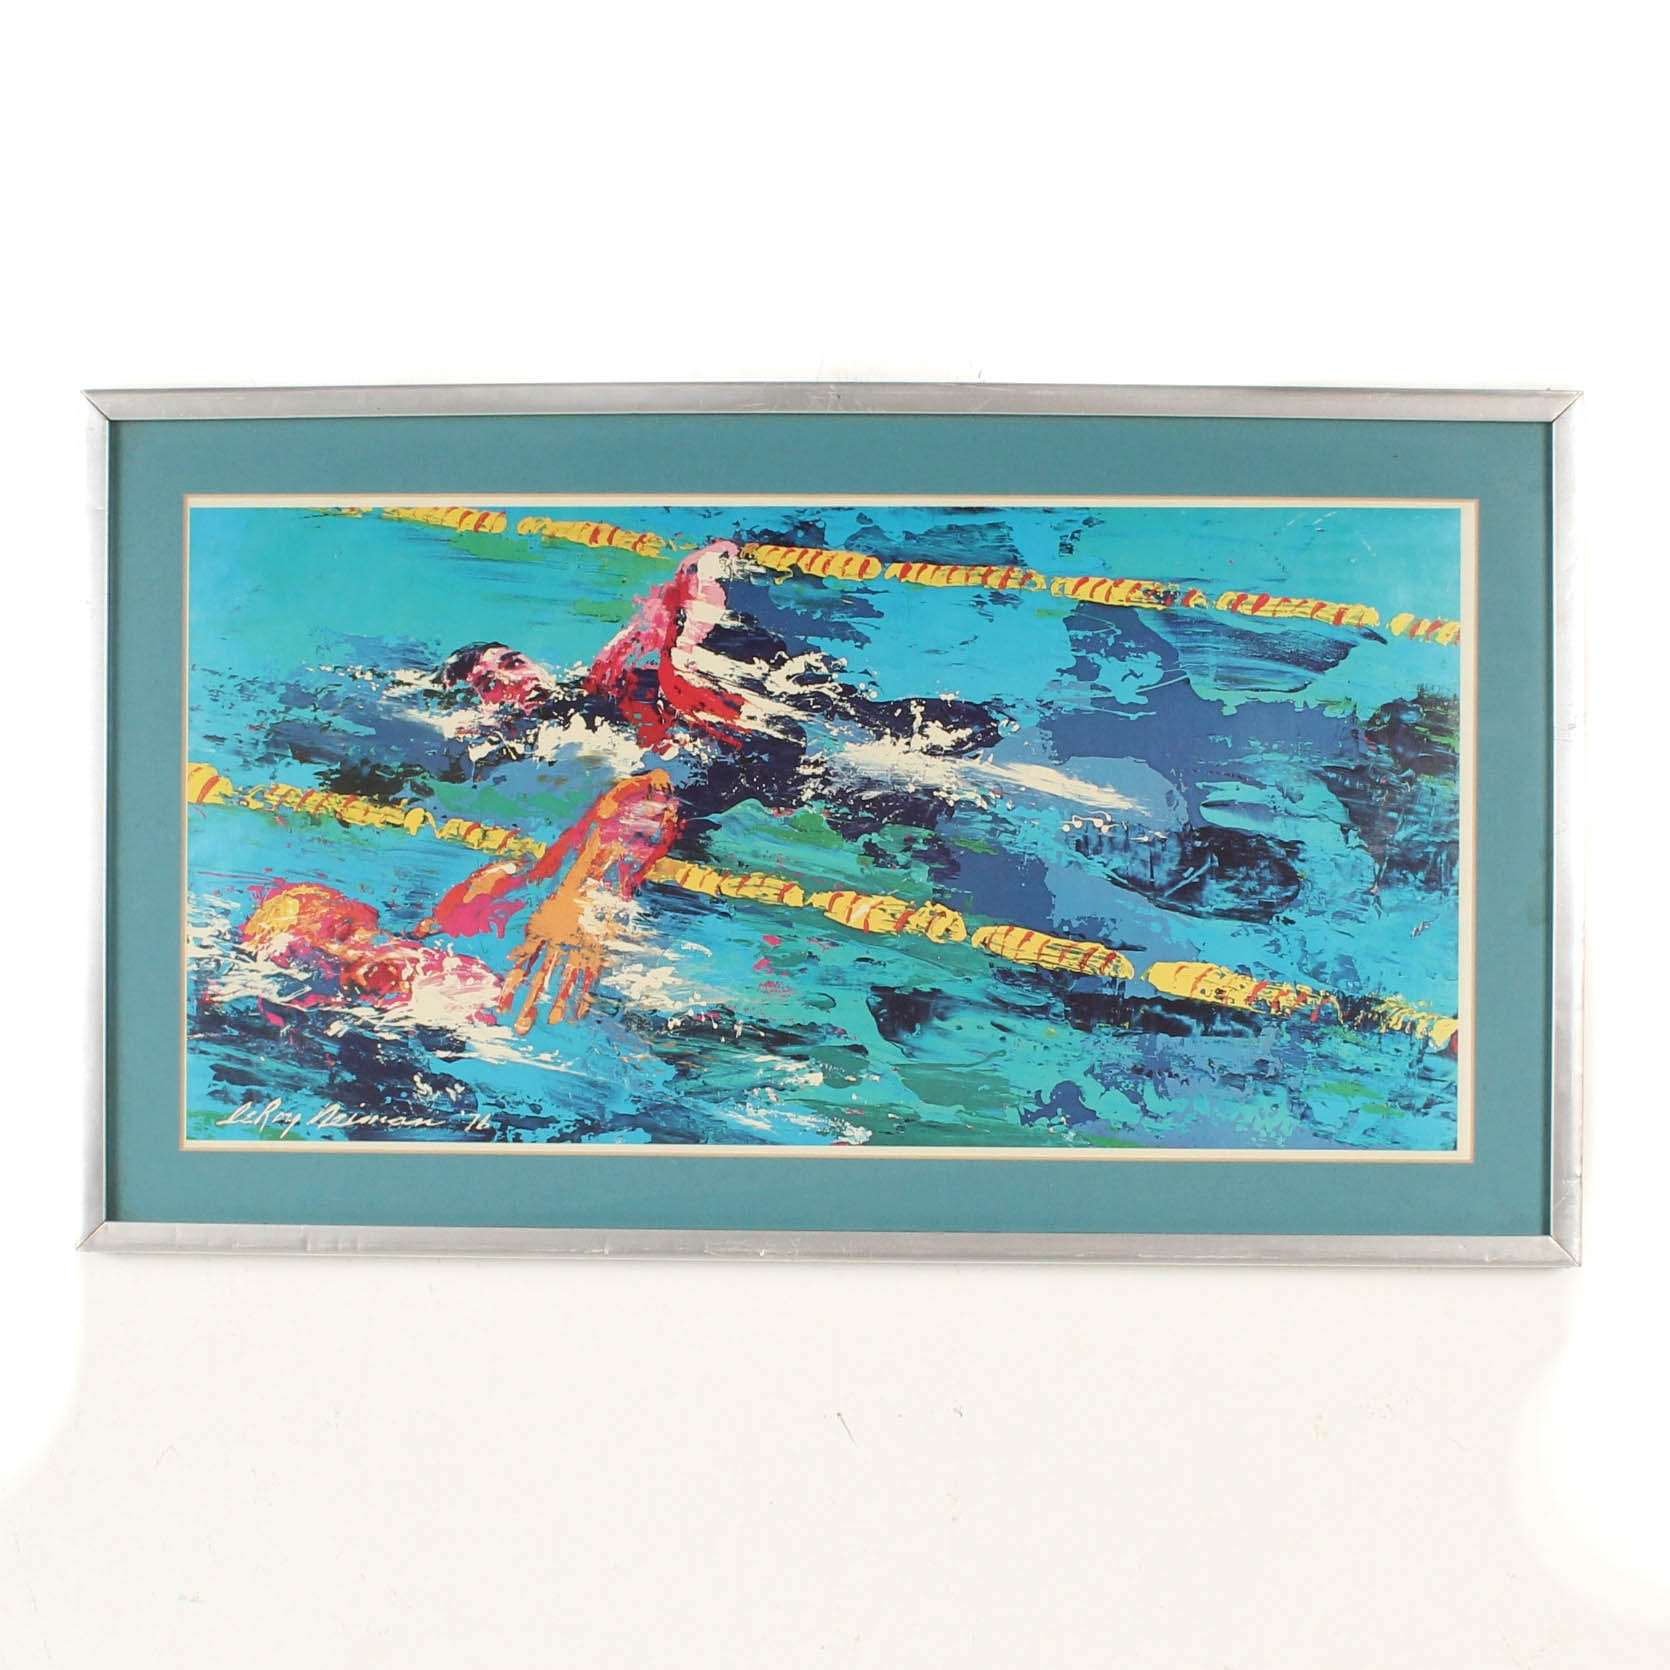 After LeRoy Neiman 1976 Olympics Offset Lithograph